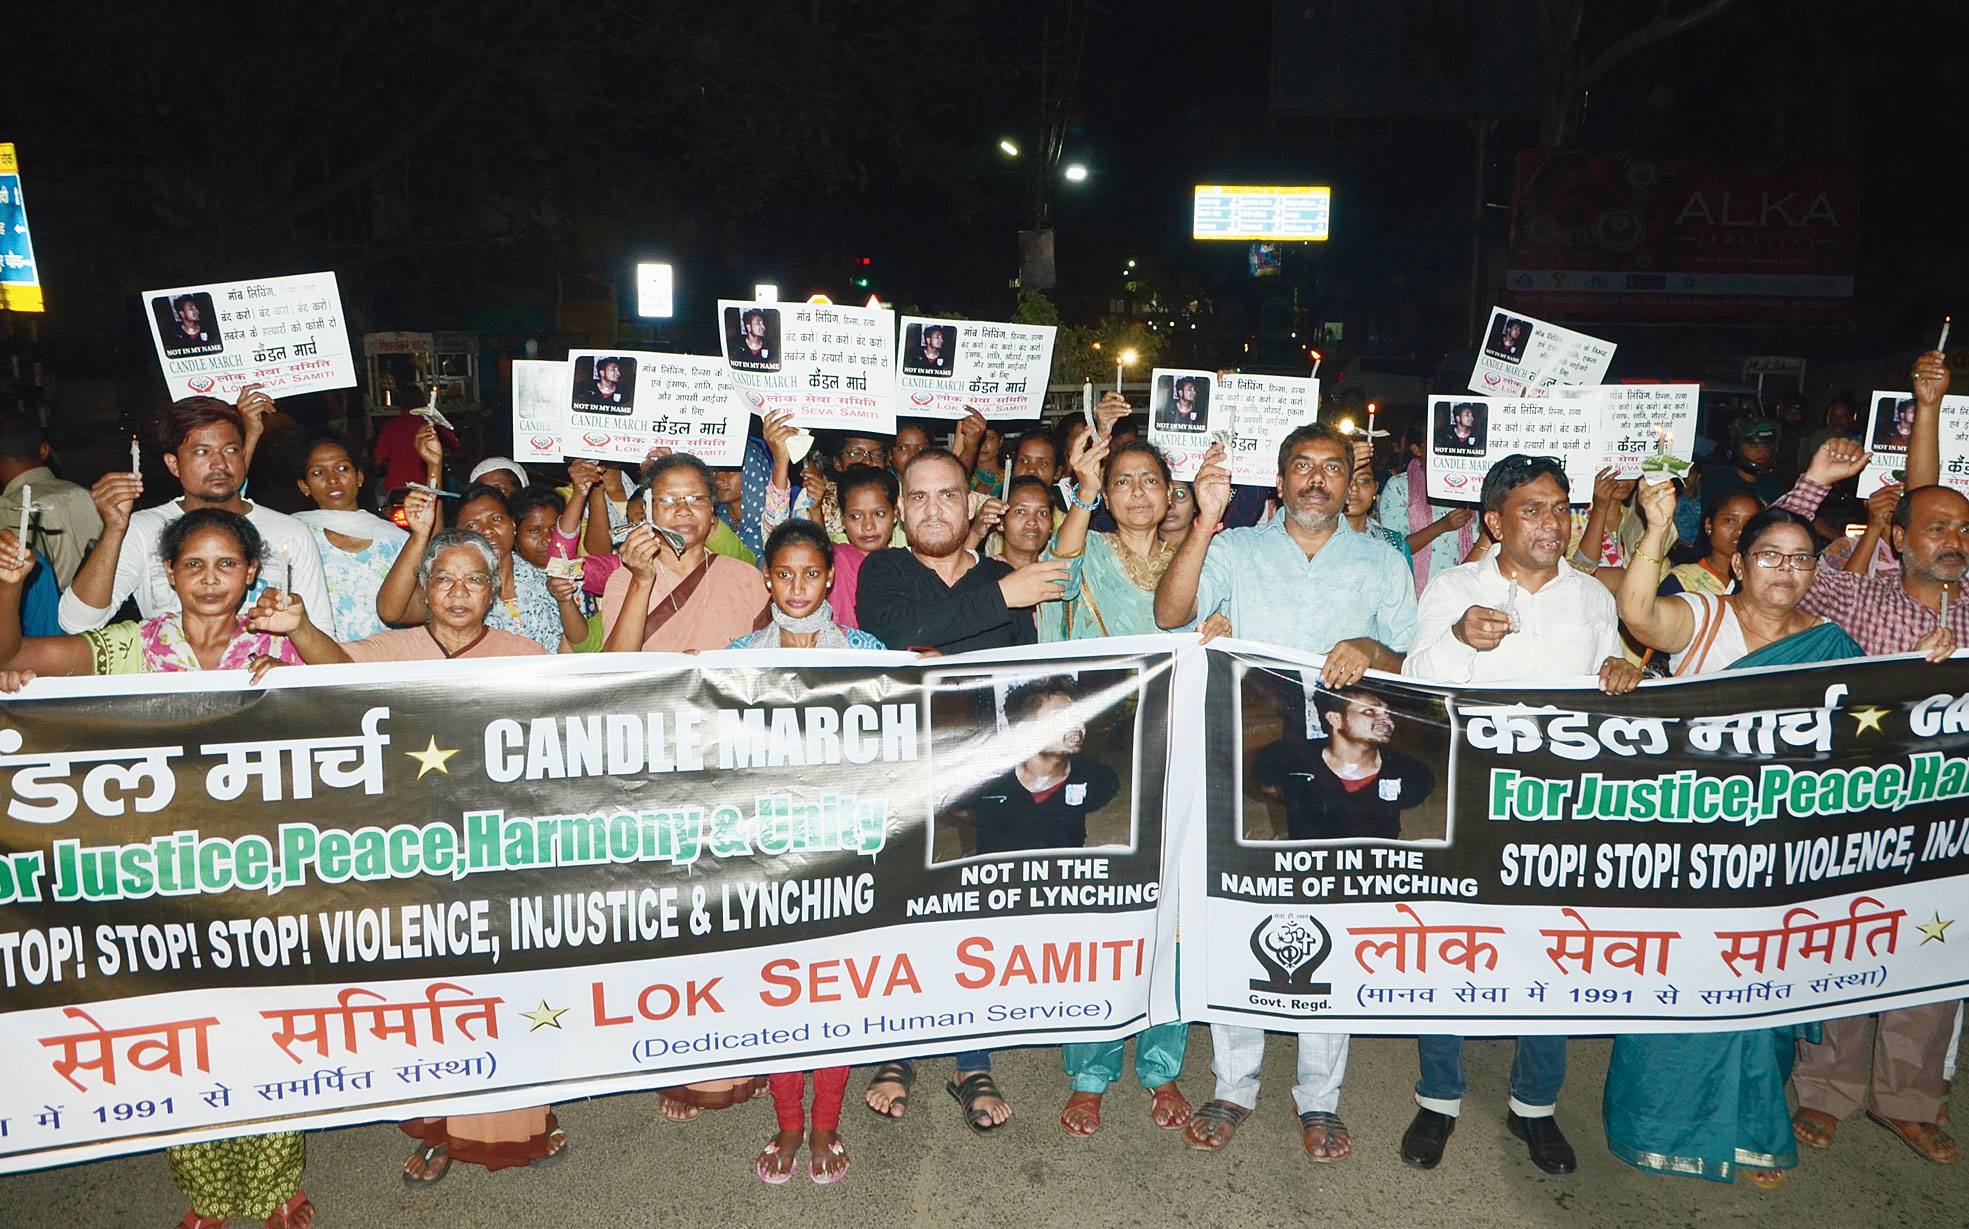 Lok Seva Samiti members take out a candle march at Kutchery Chowk in Ranchi to protest the lynching.